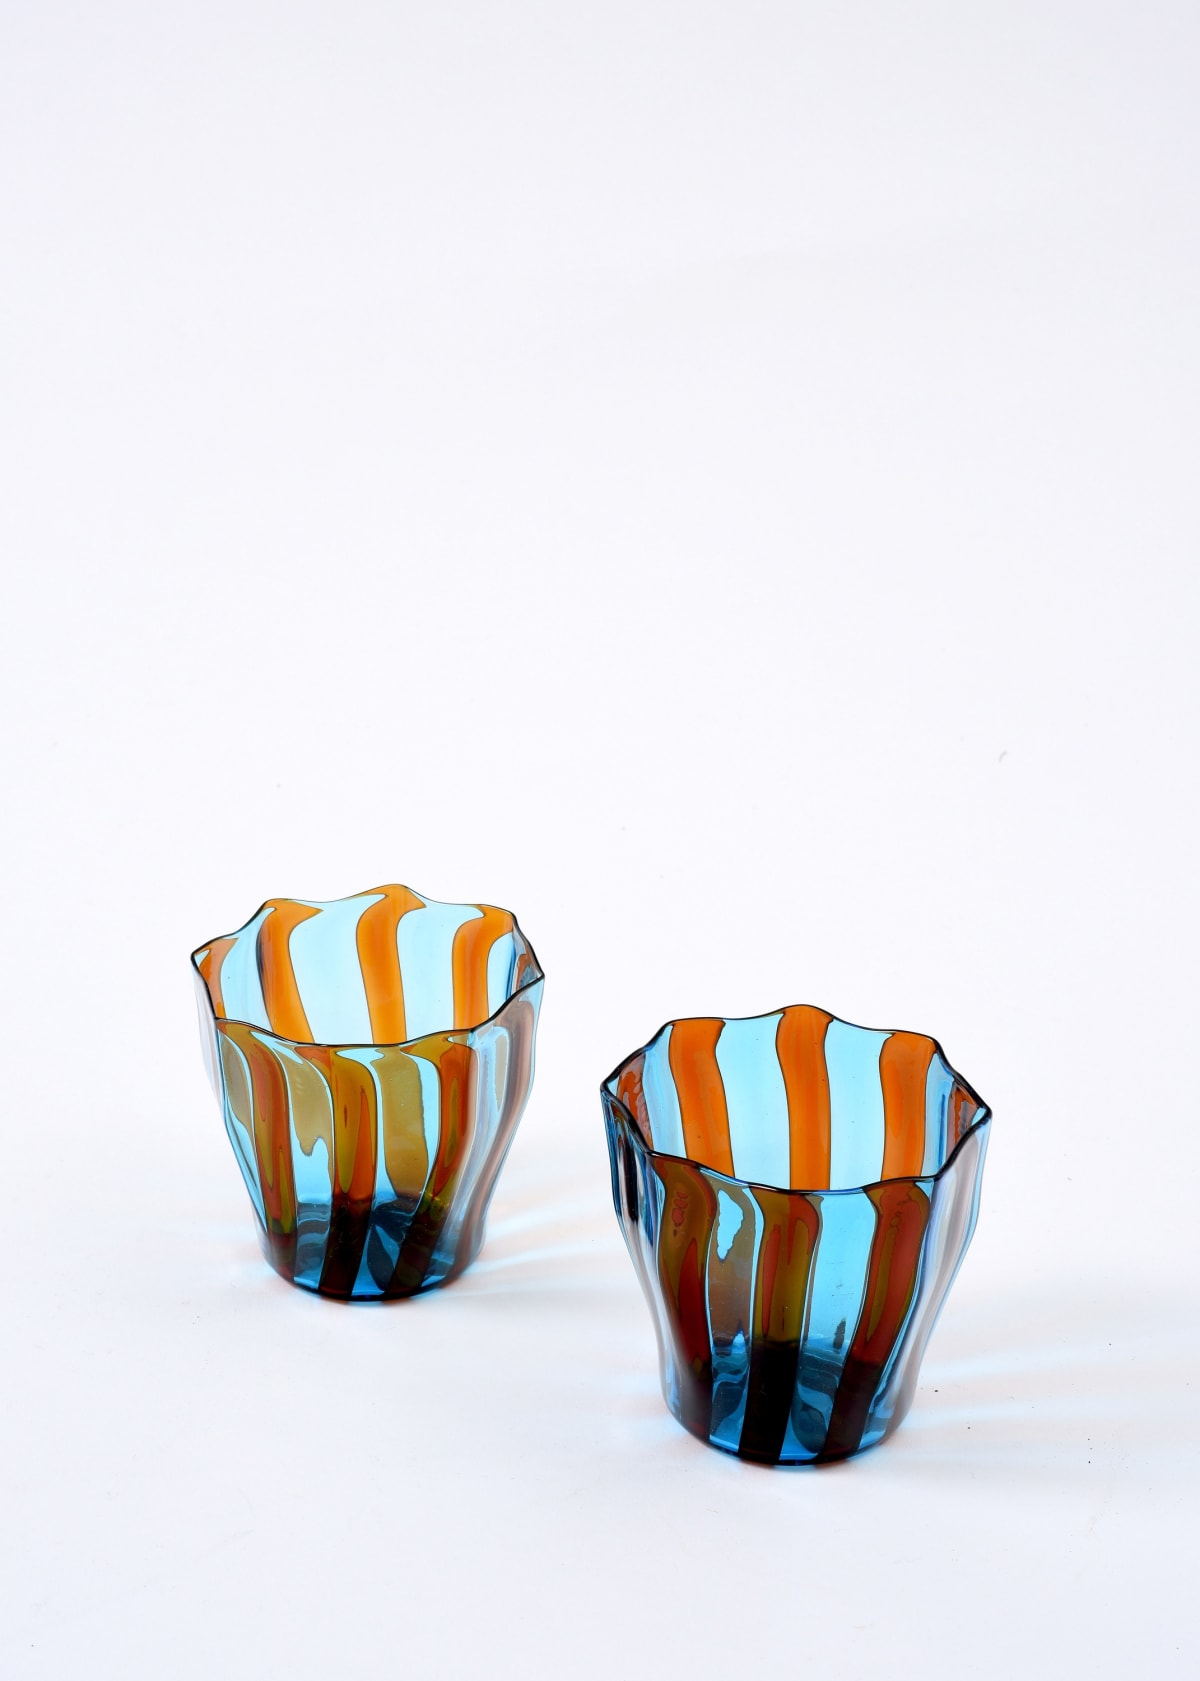 Campbell-Rey Amber and turquoise 'Rosanna' Murano tumbler Coloured Murano glass Height 8 cm Available in red and amber, red and blue, amber and turquoise, green and blue, green and turquoise. Made to order, lead time 4-6 weeks